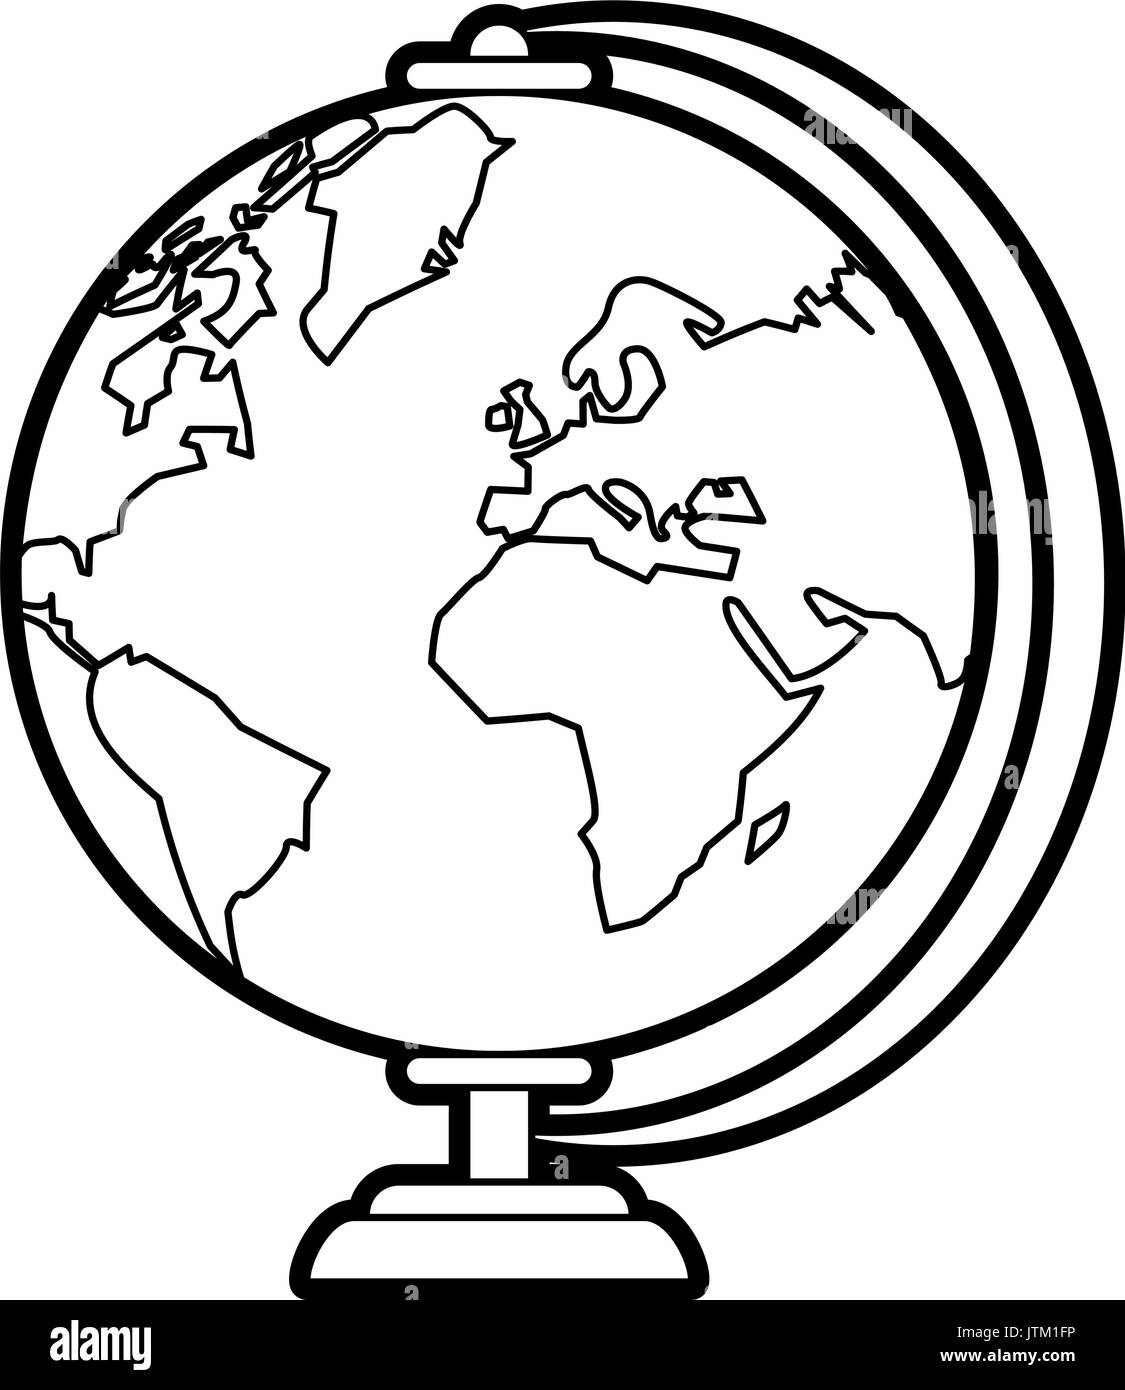 globe vector illustration - Stock Vector